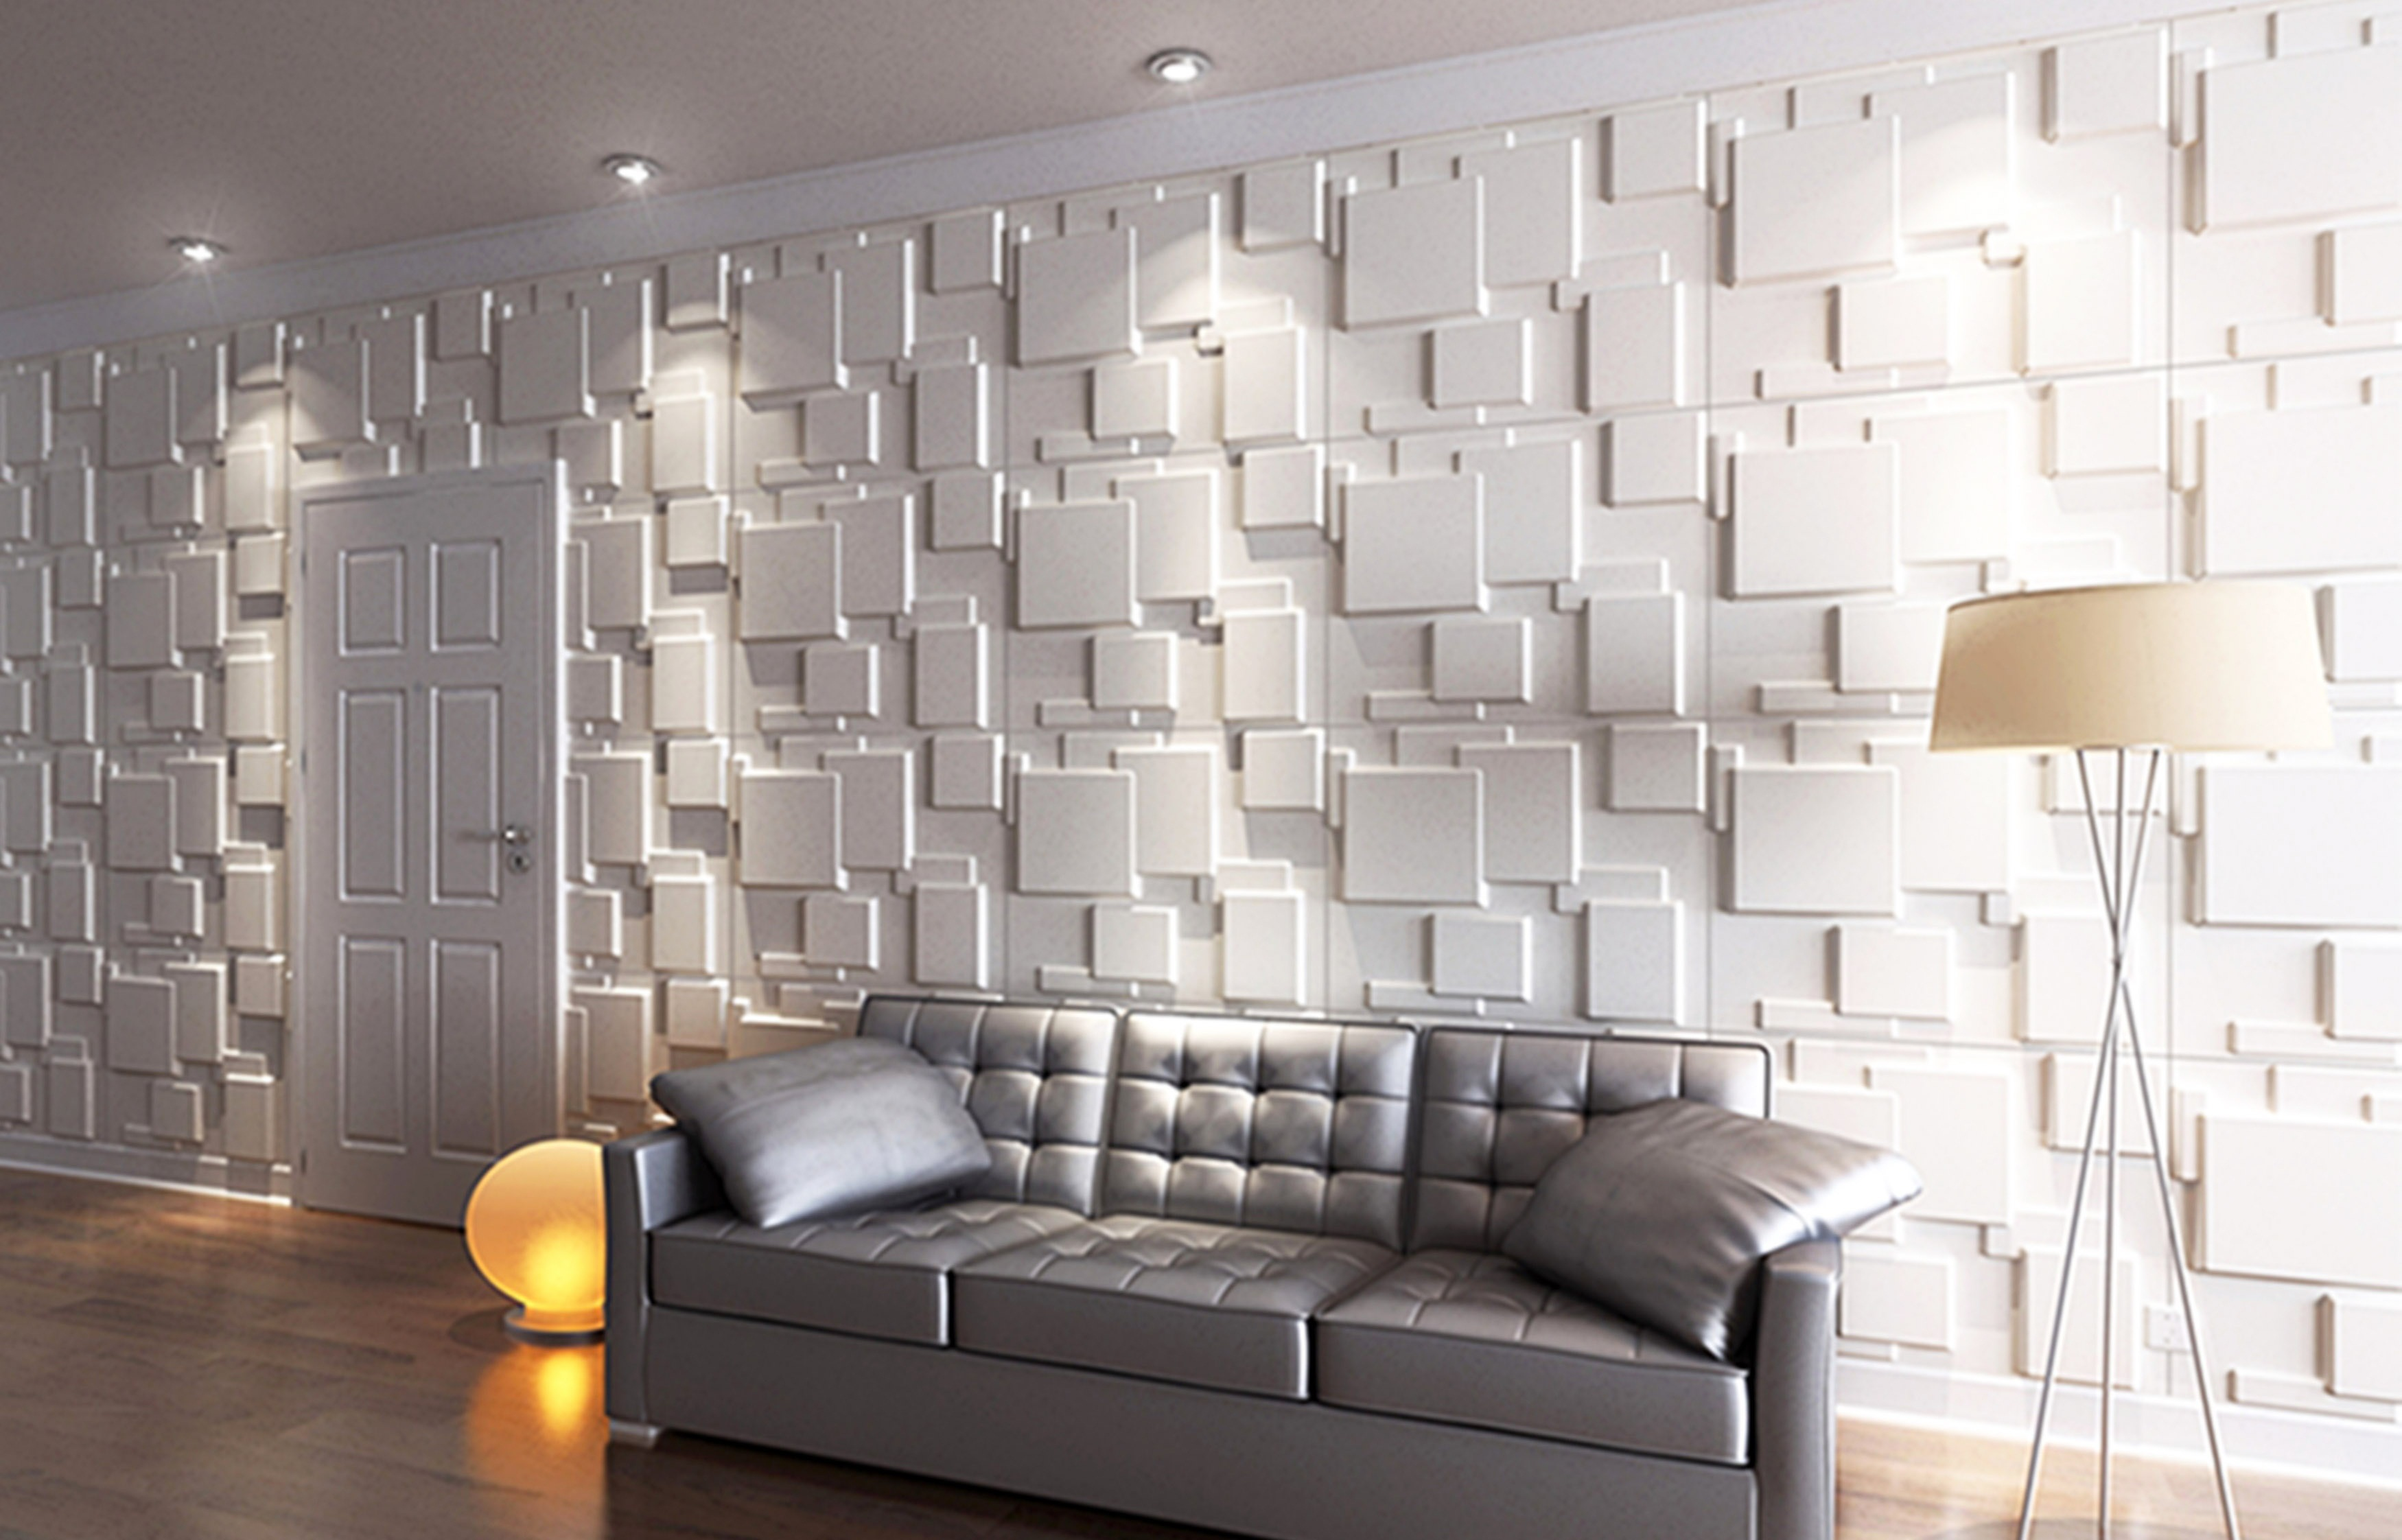 Decorative Wall Coverings : Wall covering ideas for a new home decoration roy